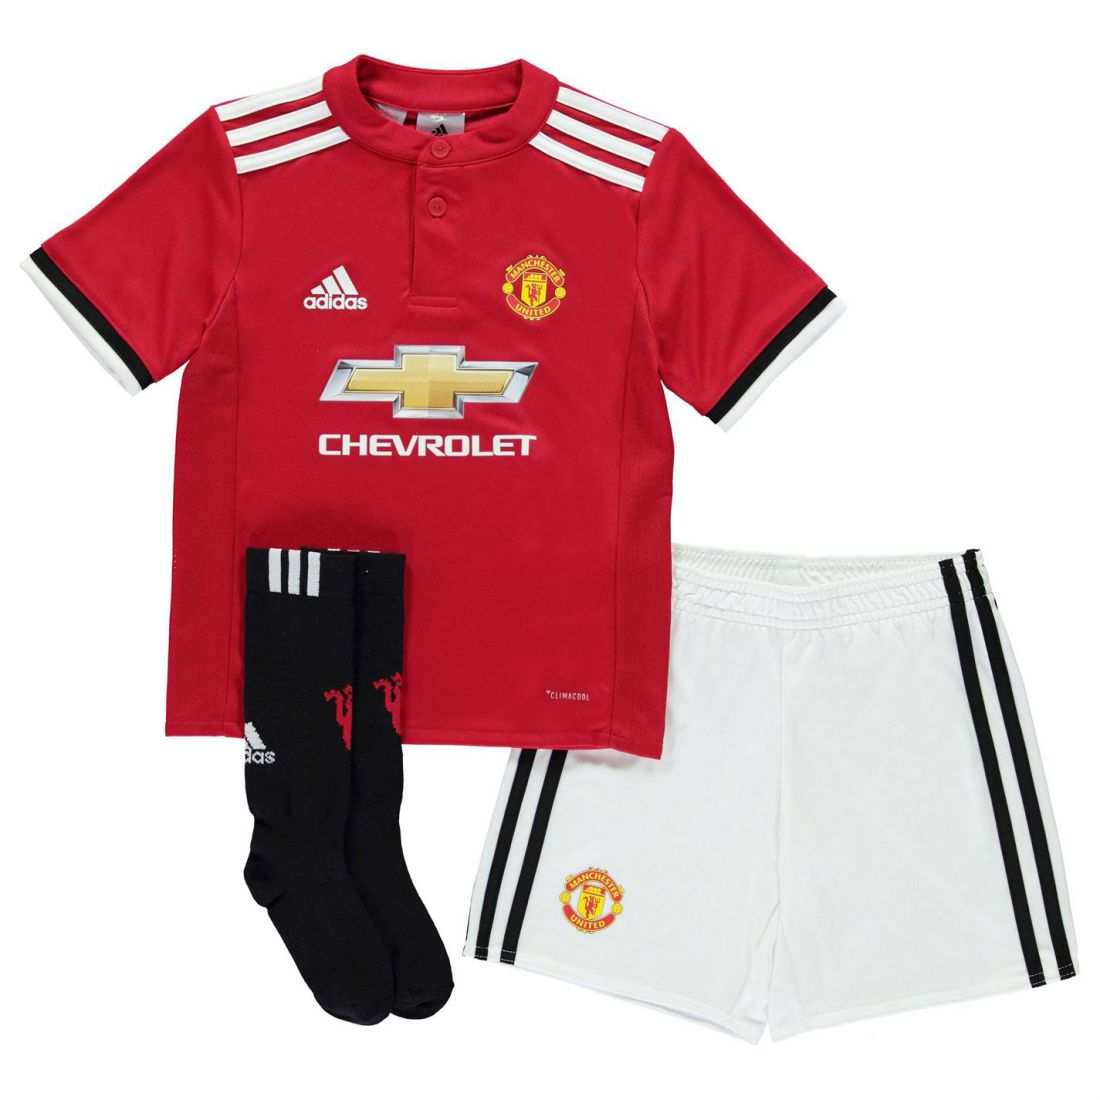 7e2a60fac adidas Kids Manchester United Home Mini Kit 2017 2018 Infant Shirt ...